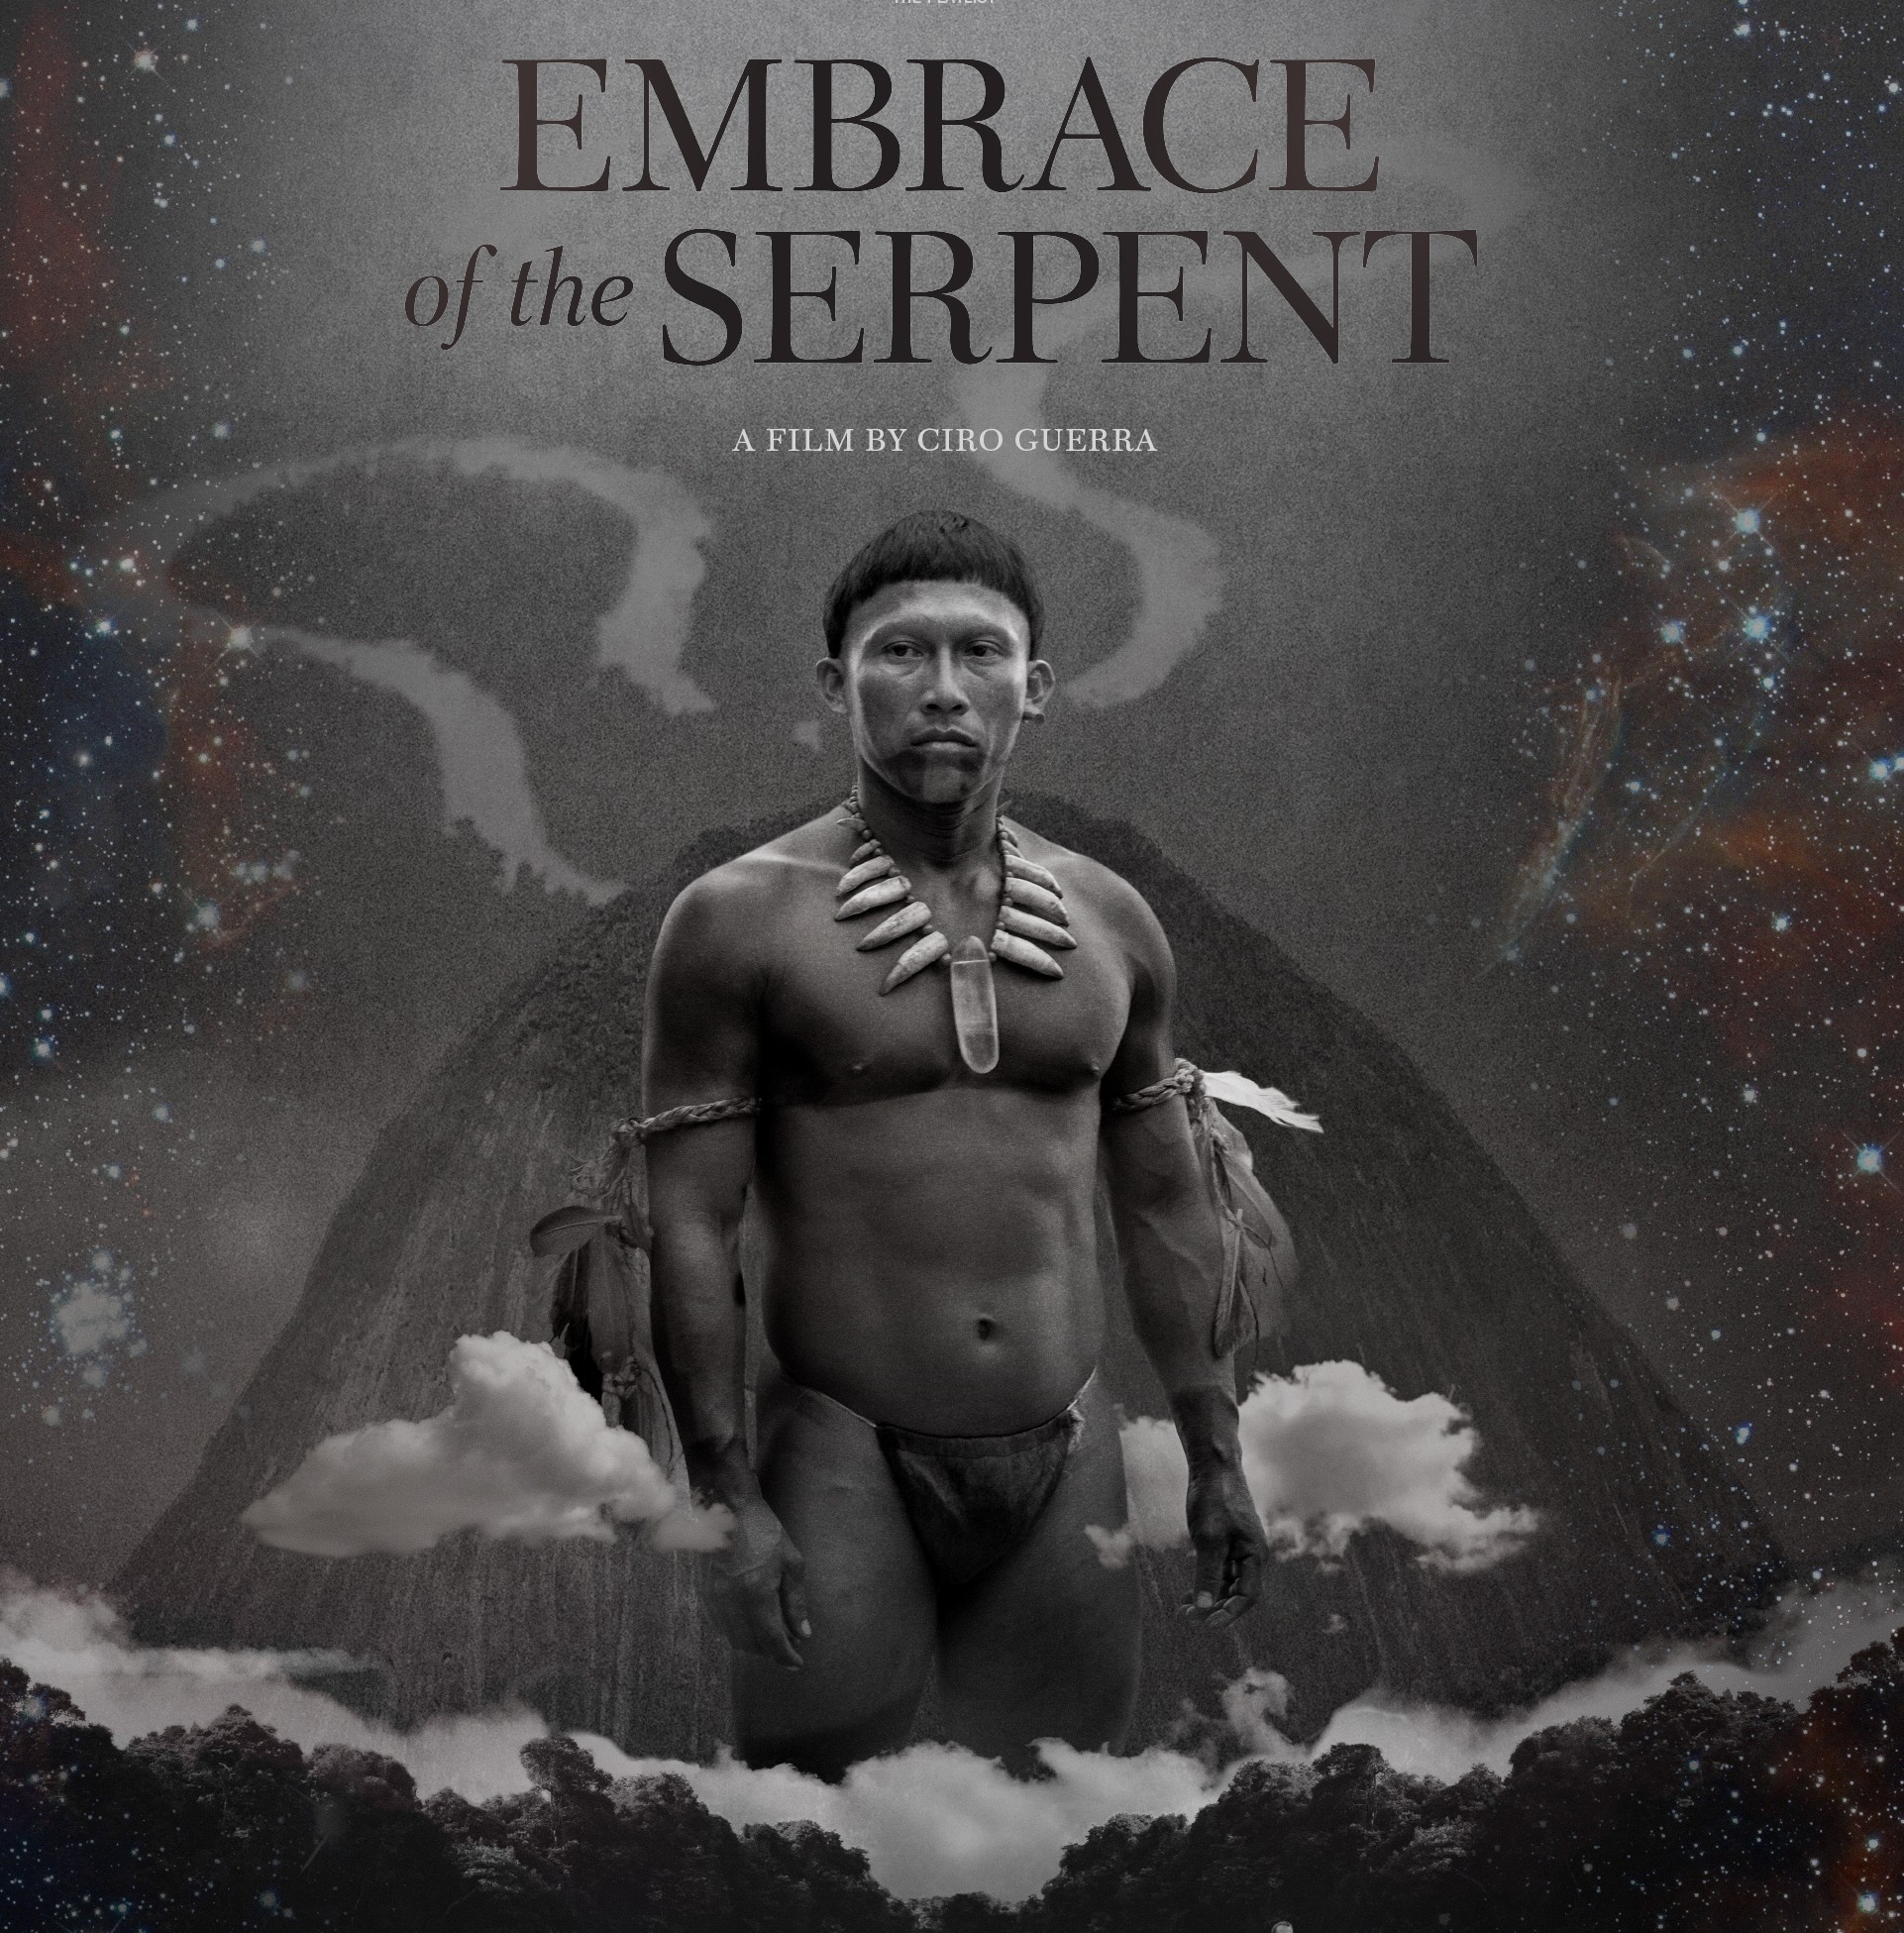 Review: Embrace of the Serpent